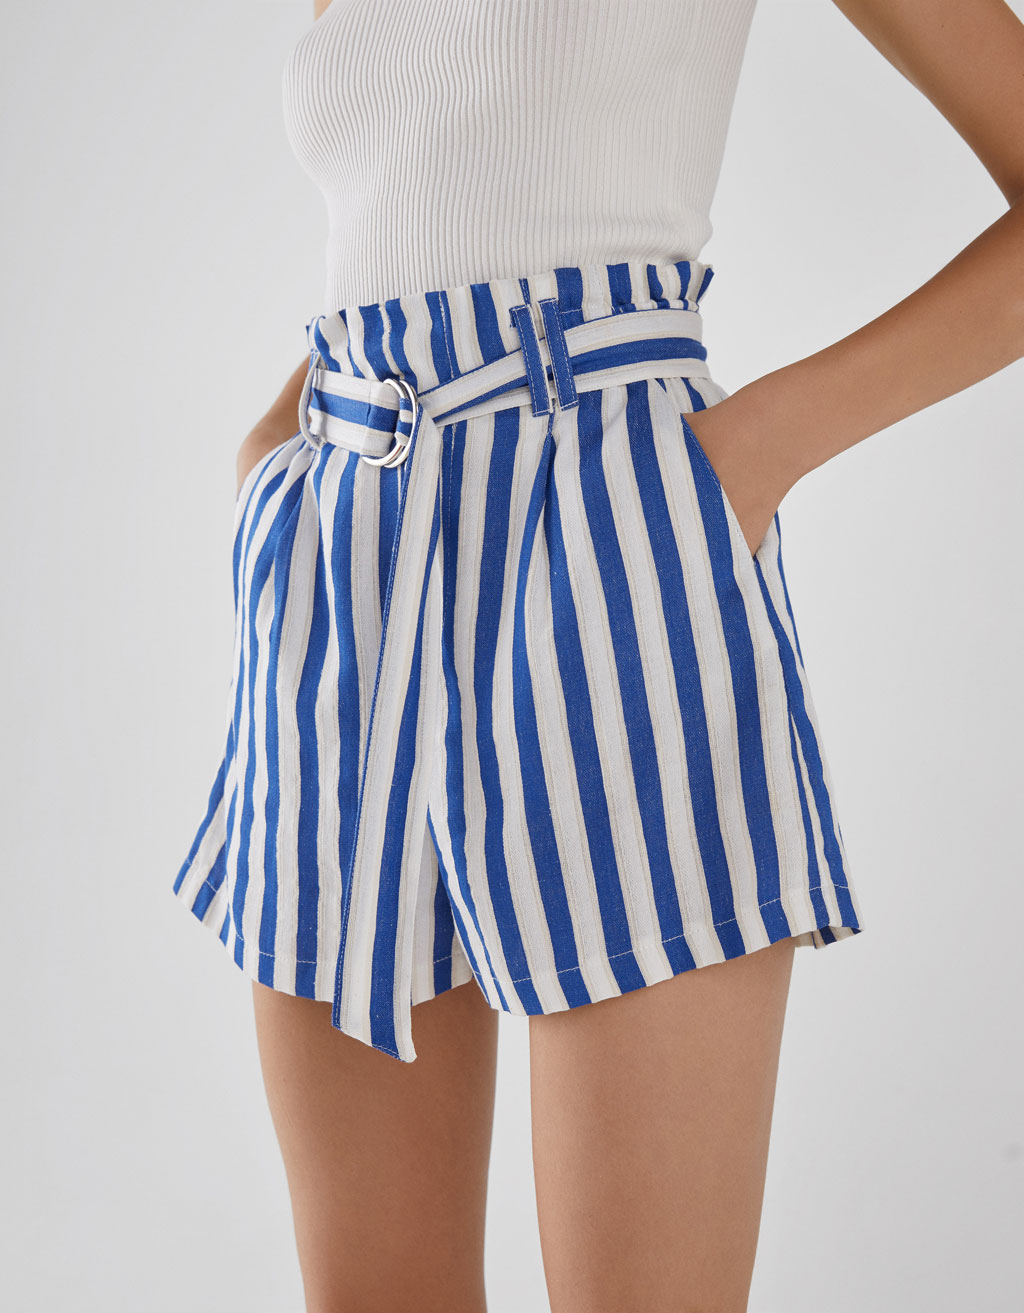 Tailored shorts with belt